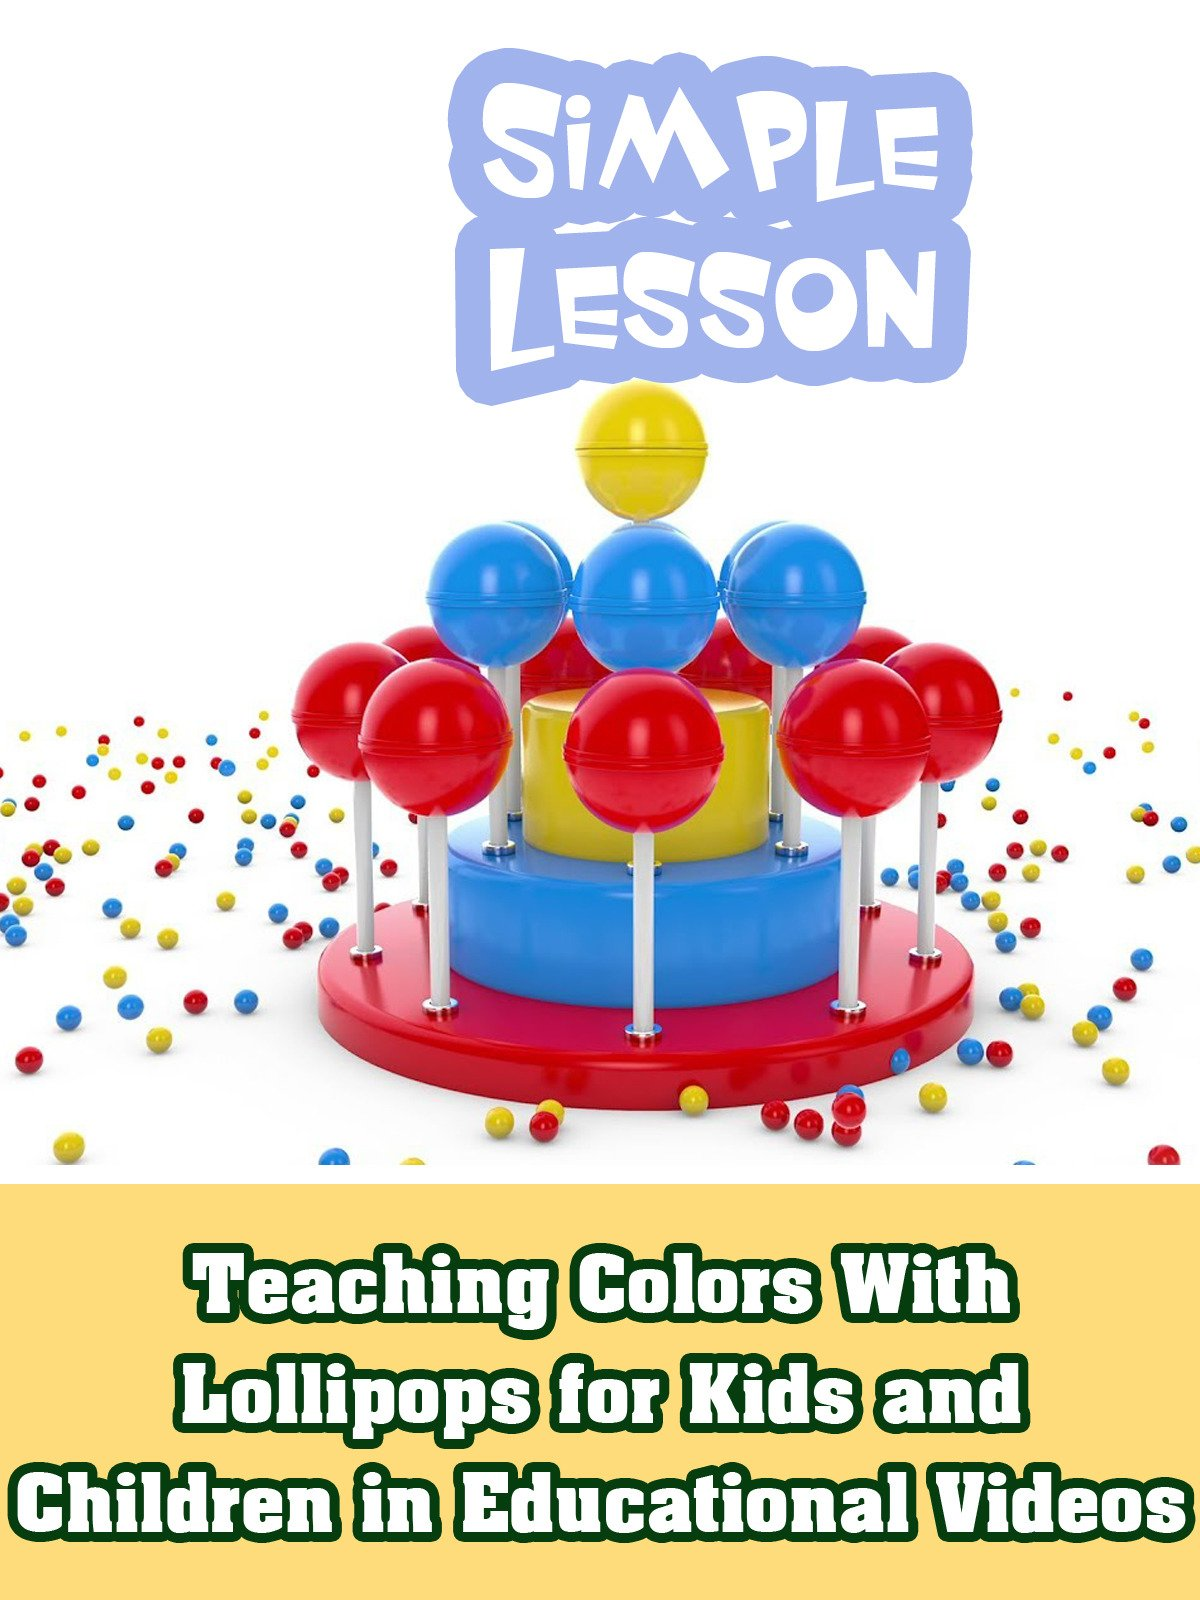 Teaching Colors With Lollipops for Kids and Children in Educational Videos